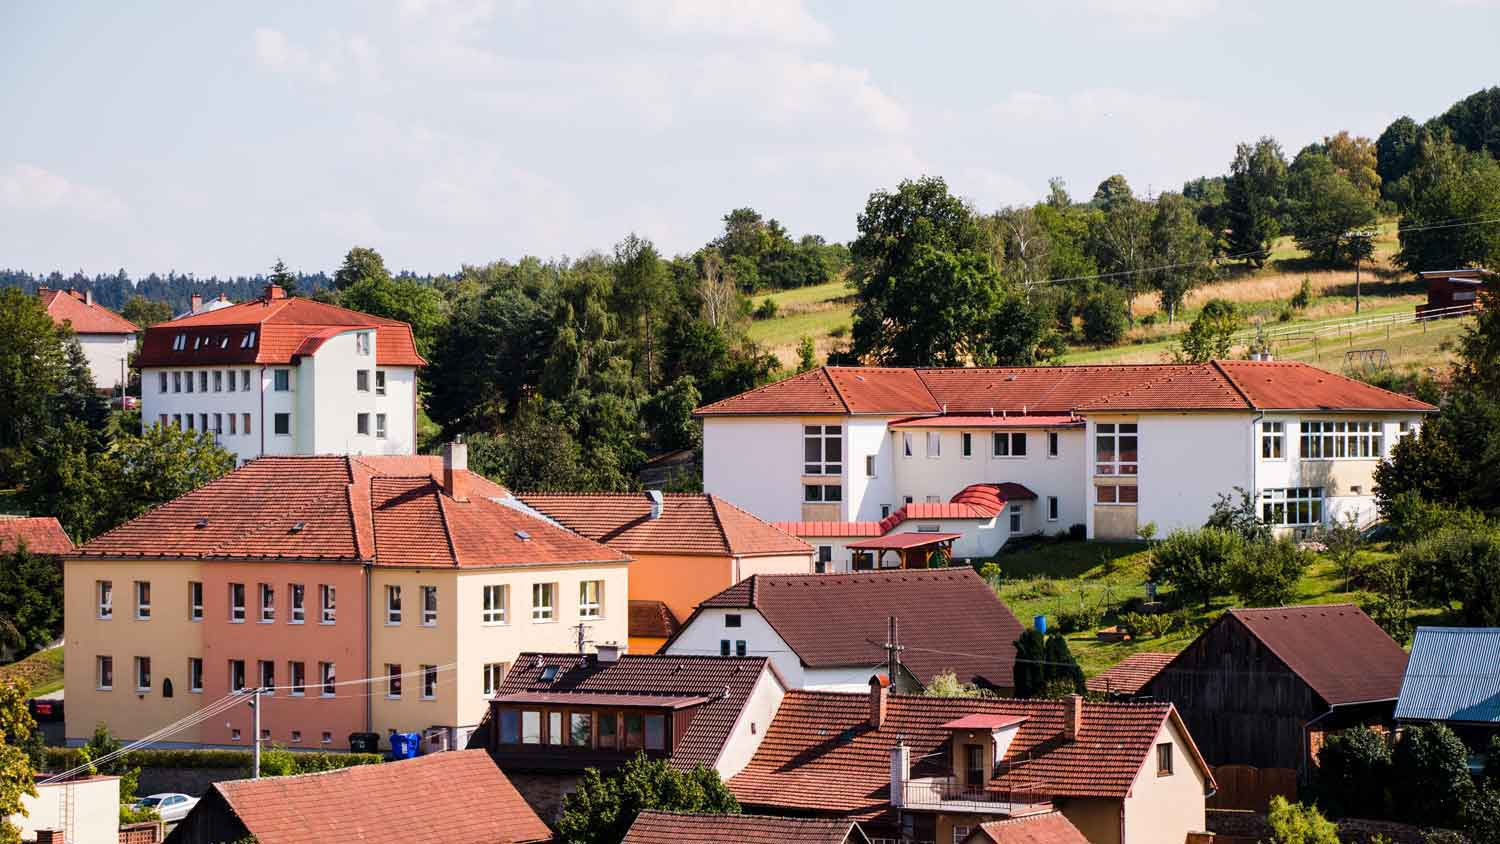 View of the building of the school Strazek on the hill